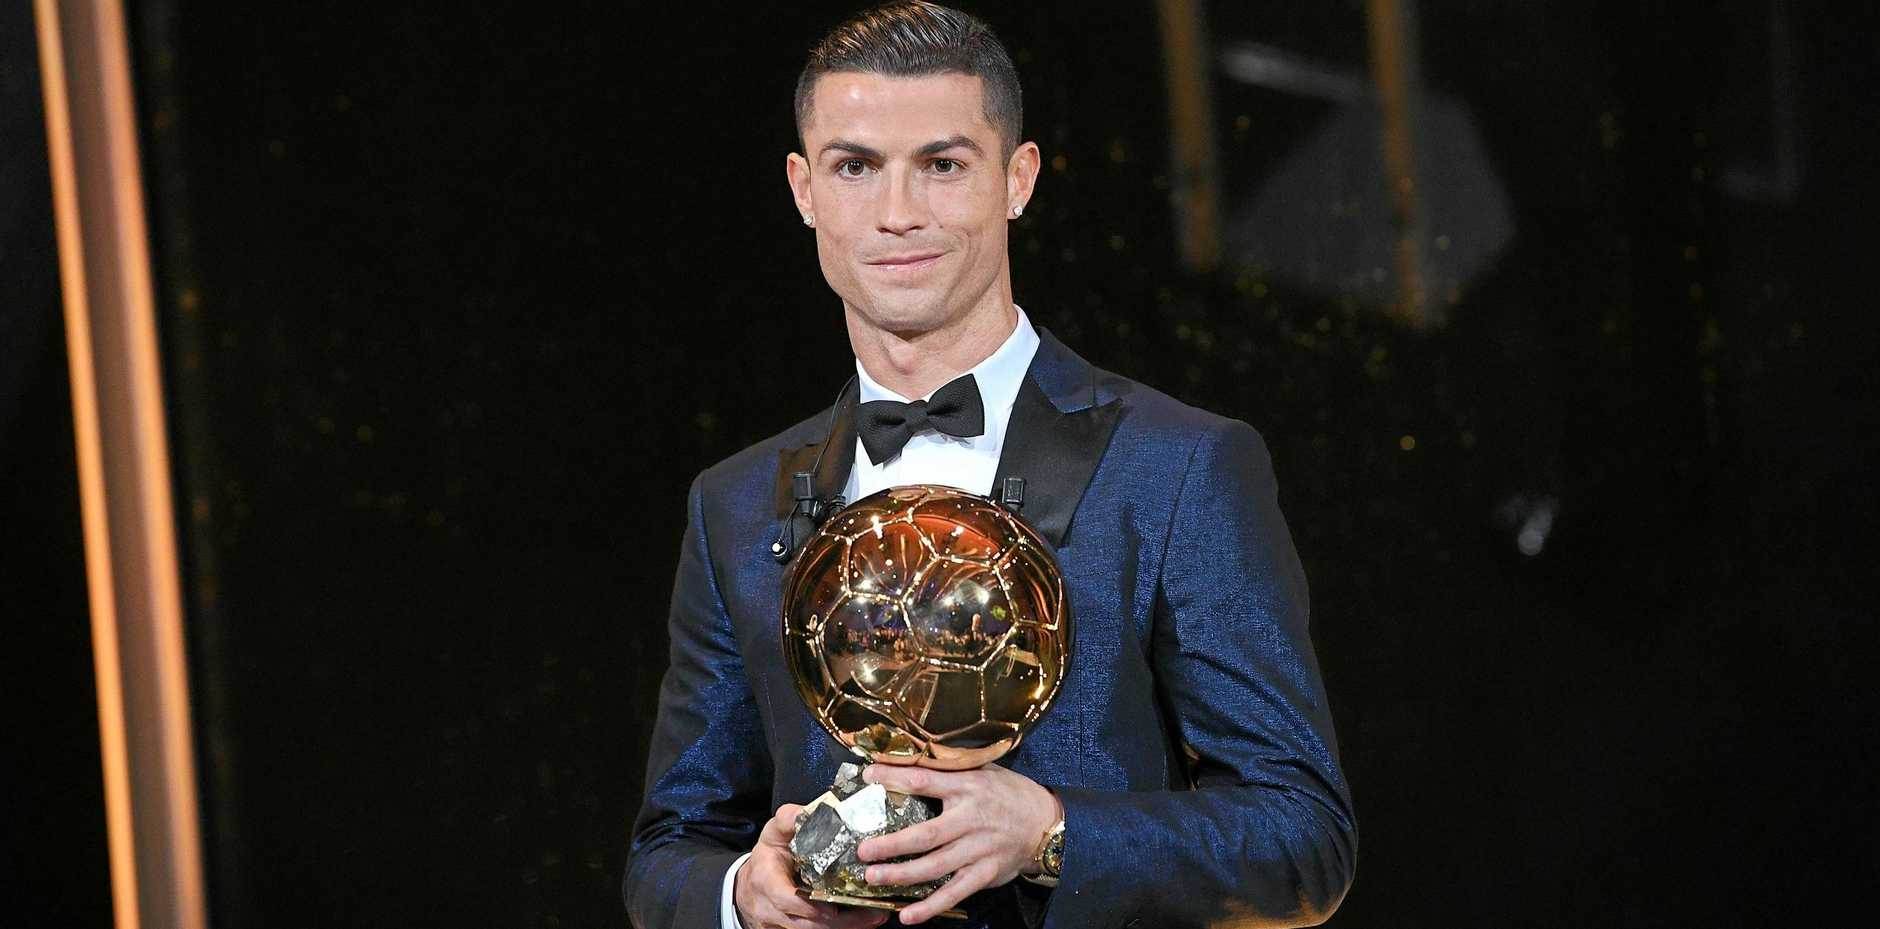 Real Madrid's Portuguese striker Cristiano Ronaldo with his record-equalling fifth Ballon d'Or award